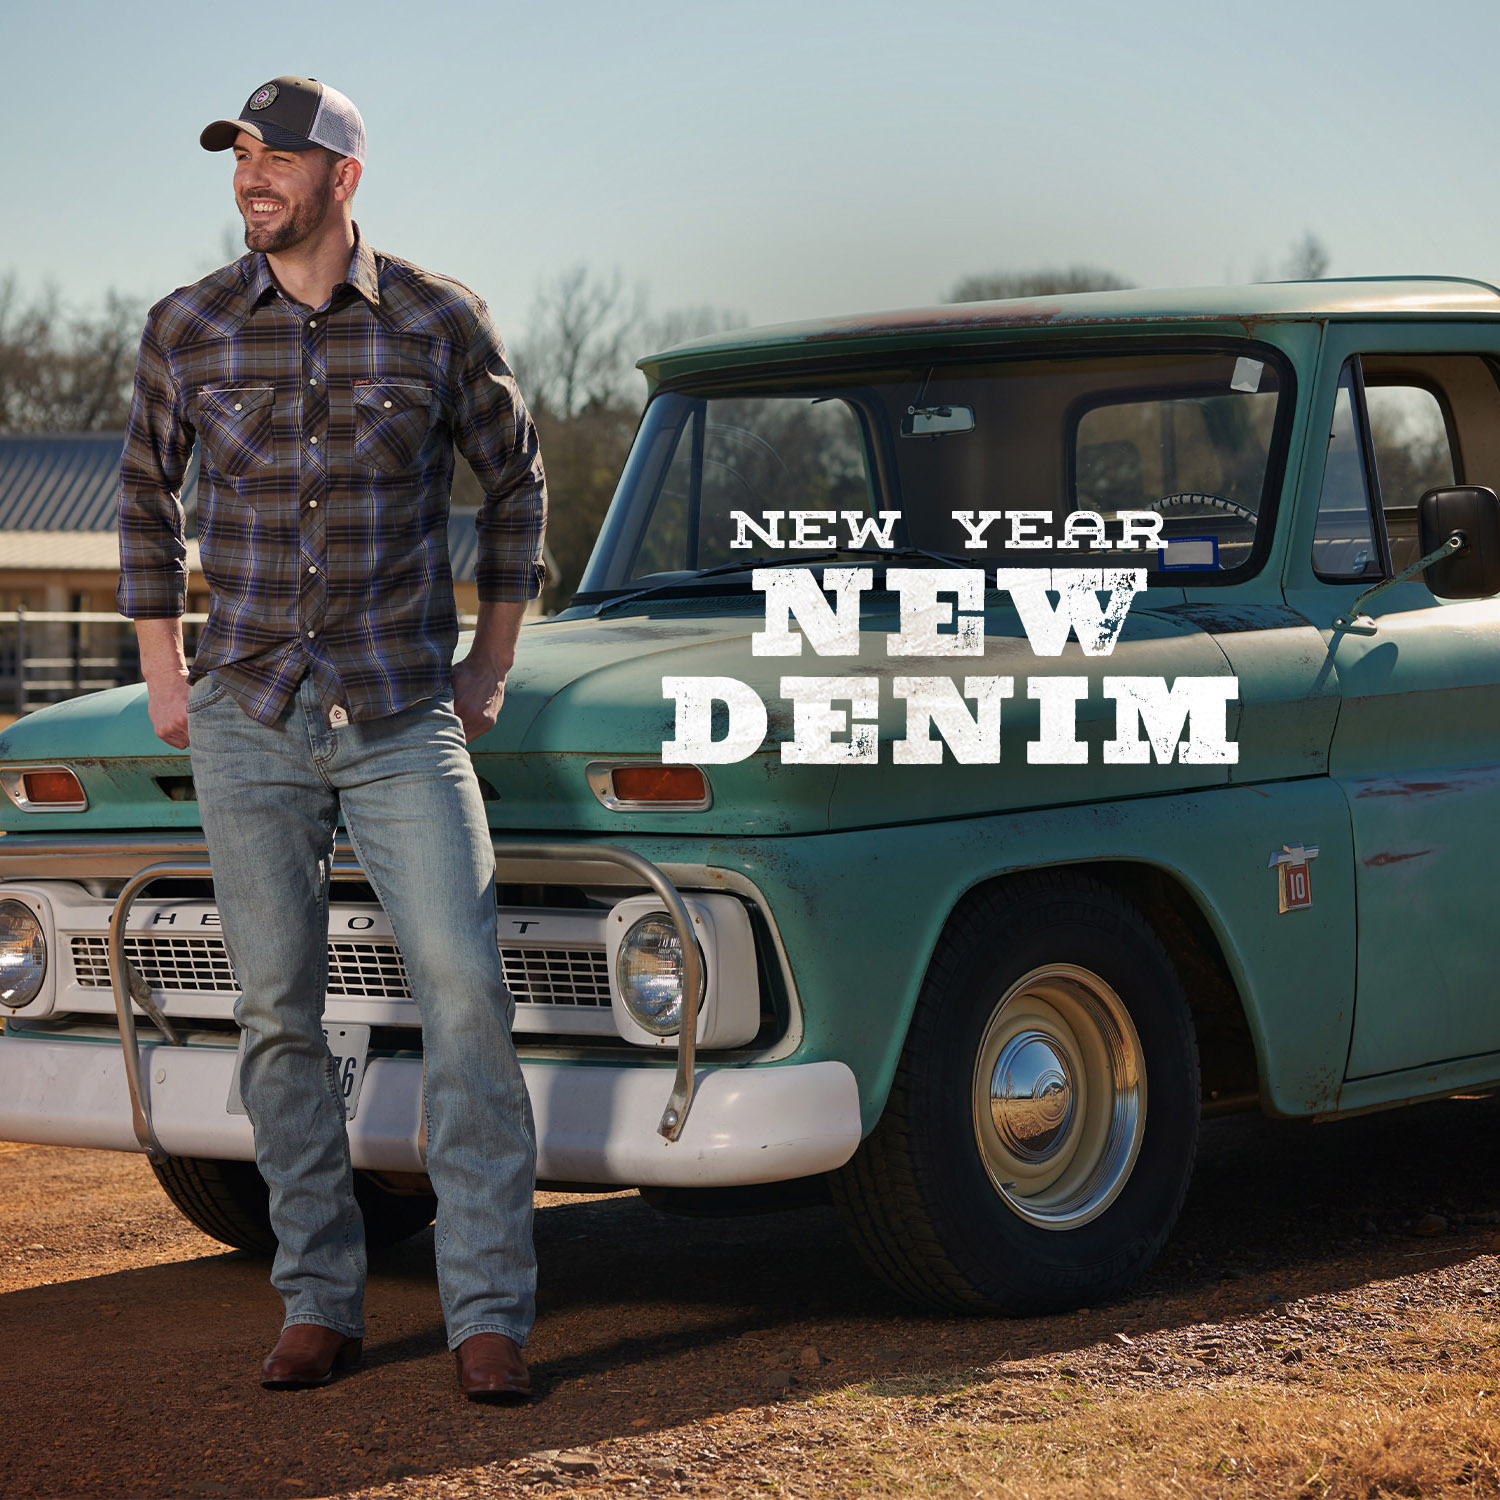 It's a new year, time for new jeans! Check out our huge selection of denim for Men and Women in-store and online!